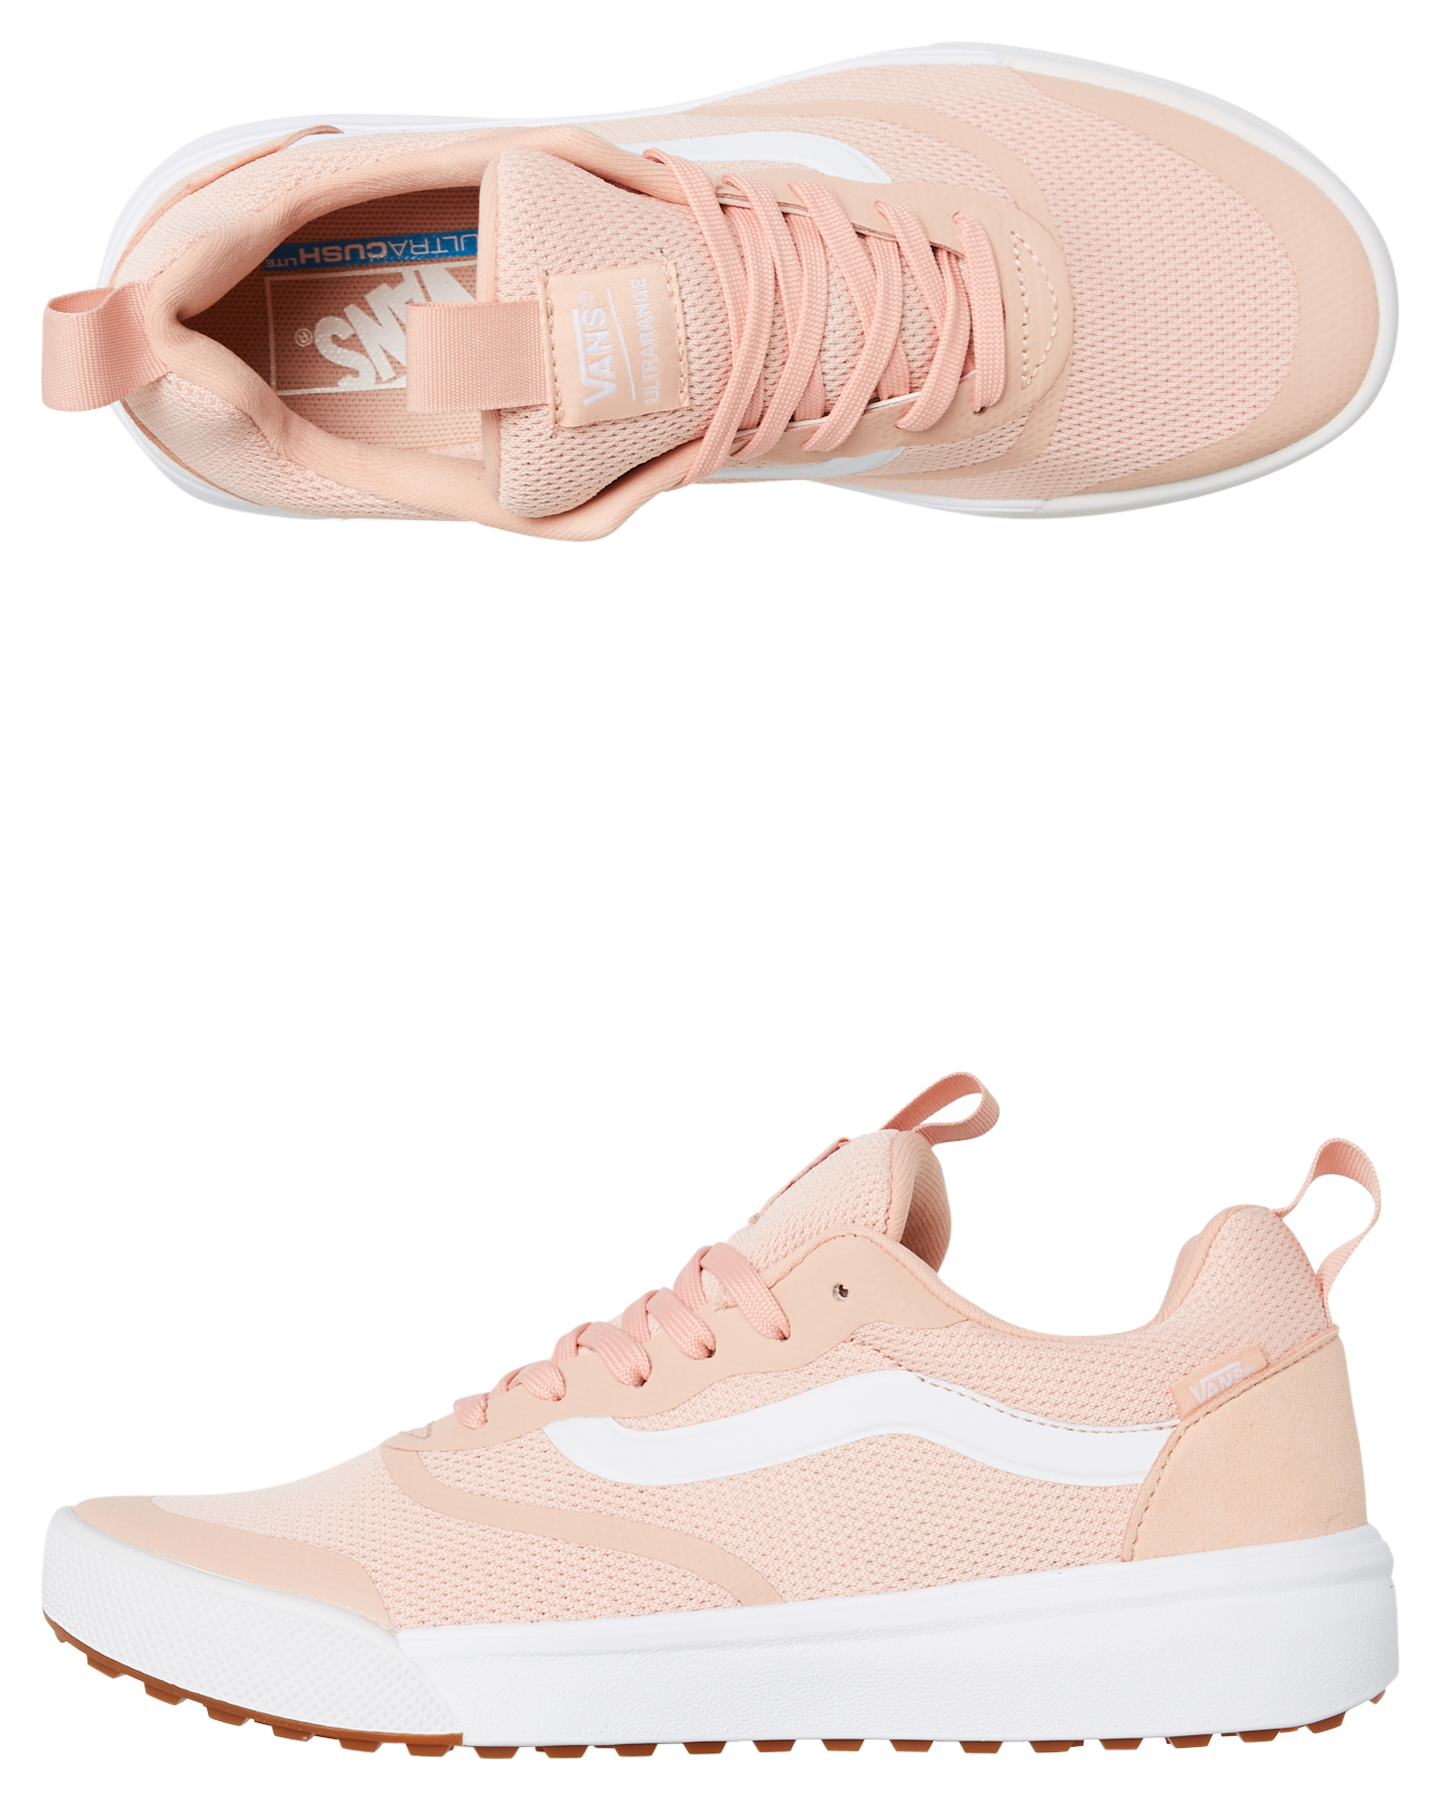 fc30dfaff812 ROSE CLOUD WOMENS FOOTWEAR VANS SNEAKERS - SSVNA3MVUOBJPNKW ...